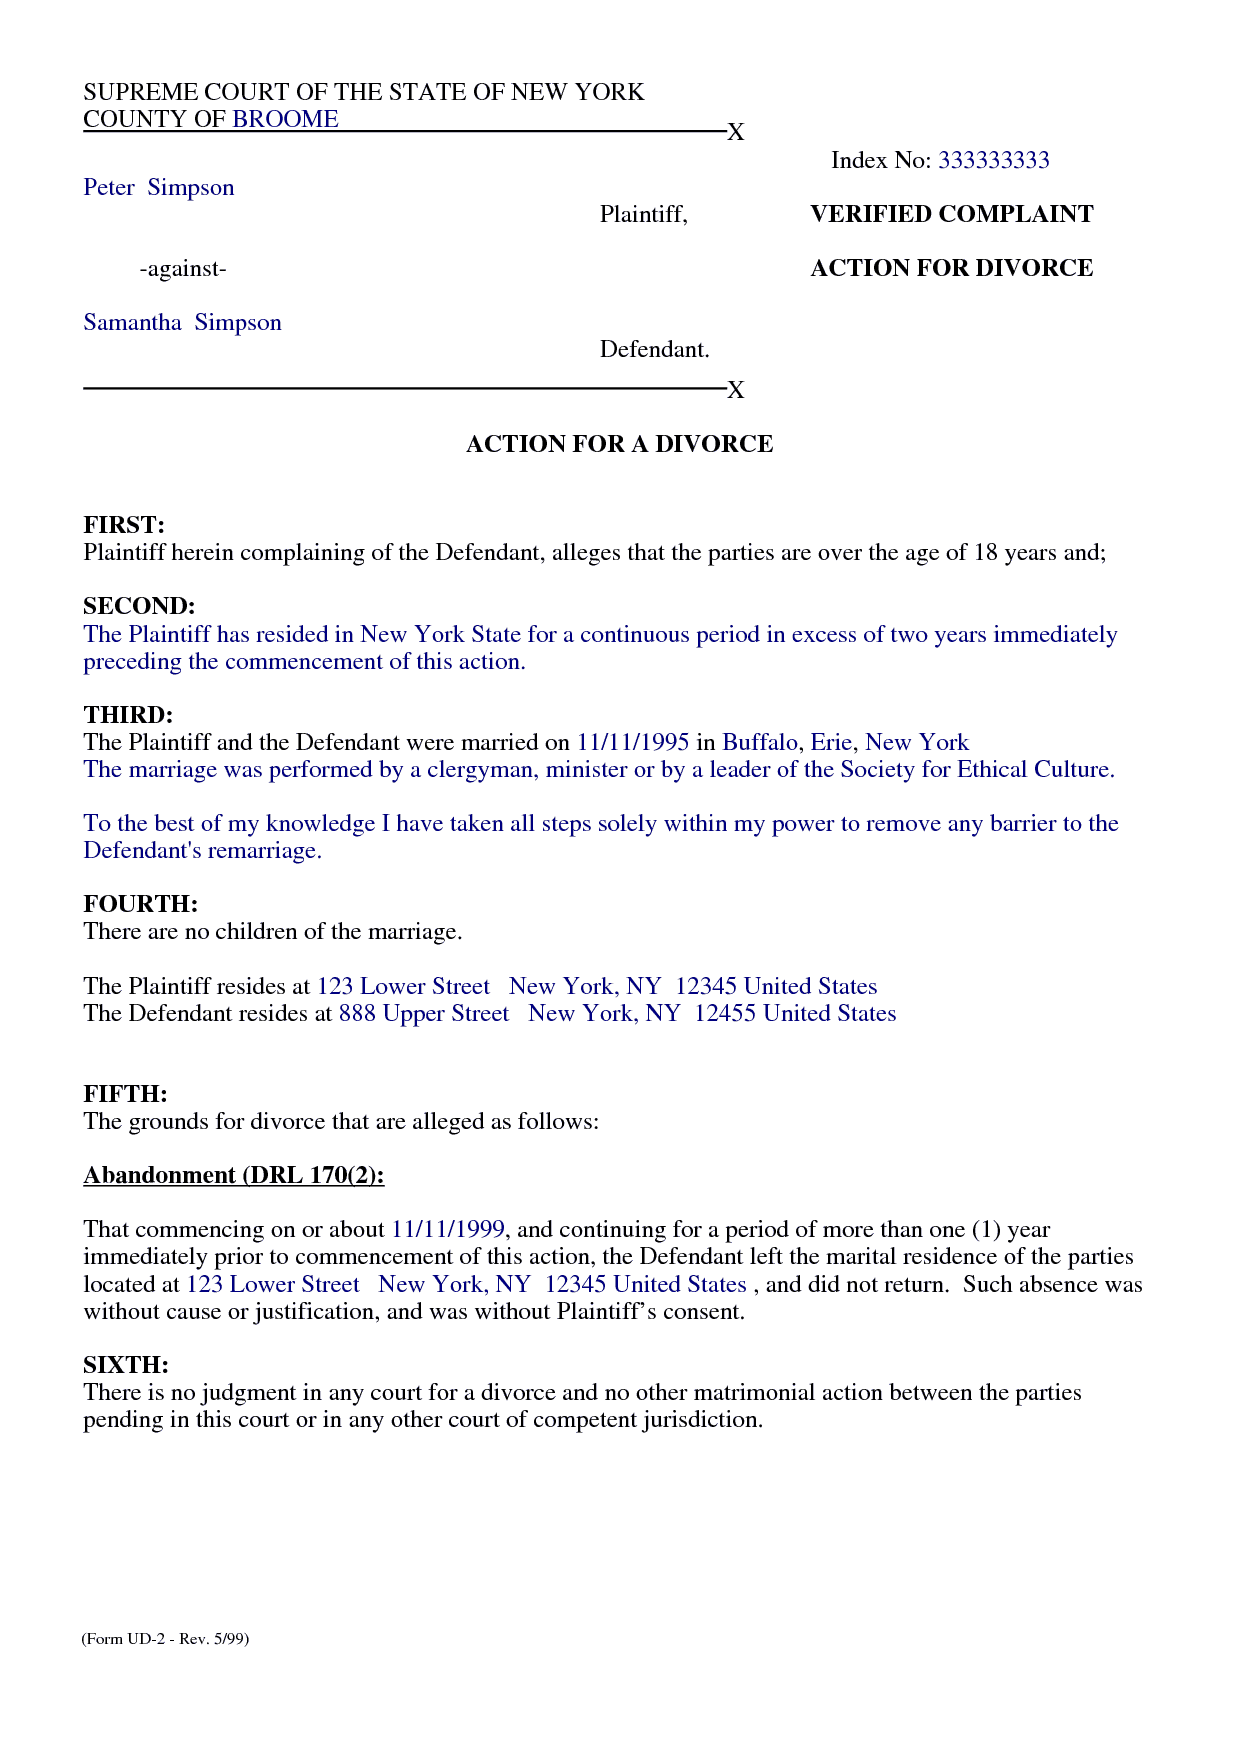 seperation agreement template - top 5 free formats of separation agreement templates